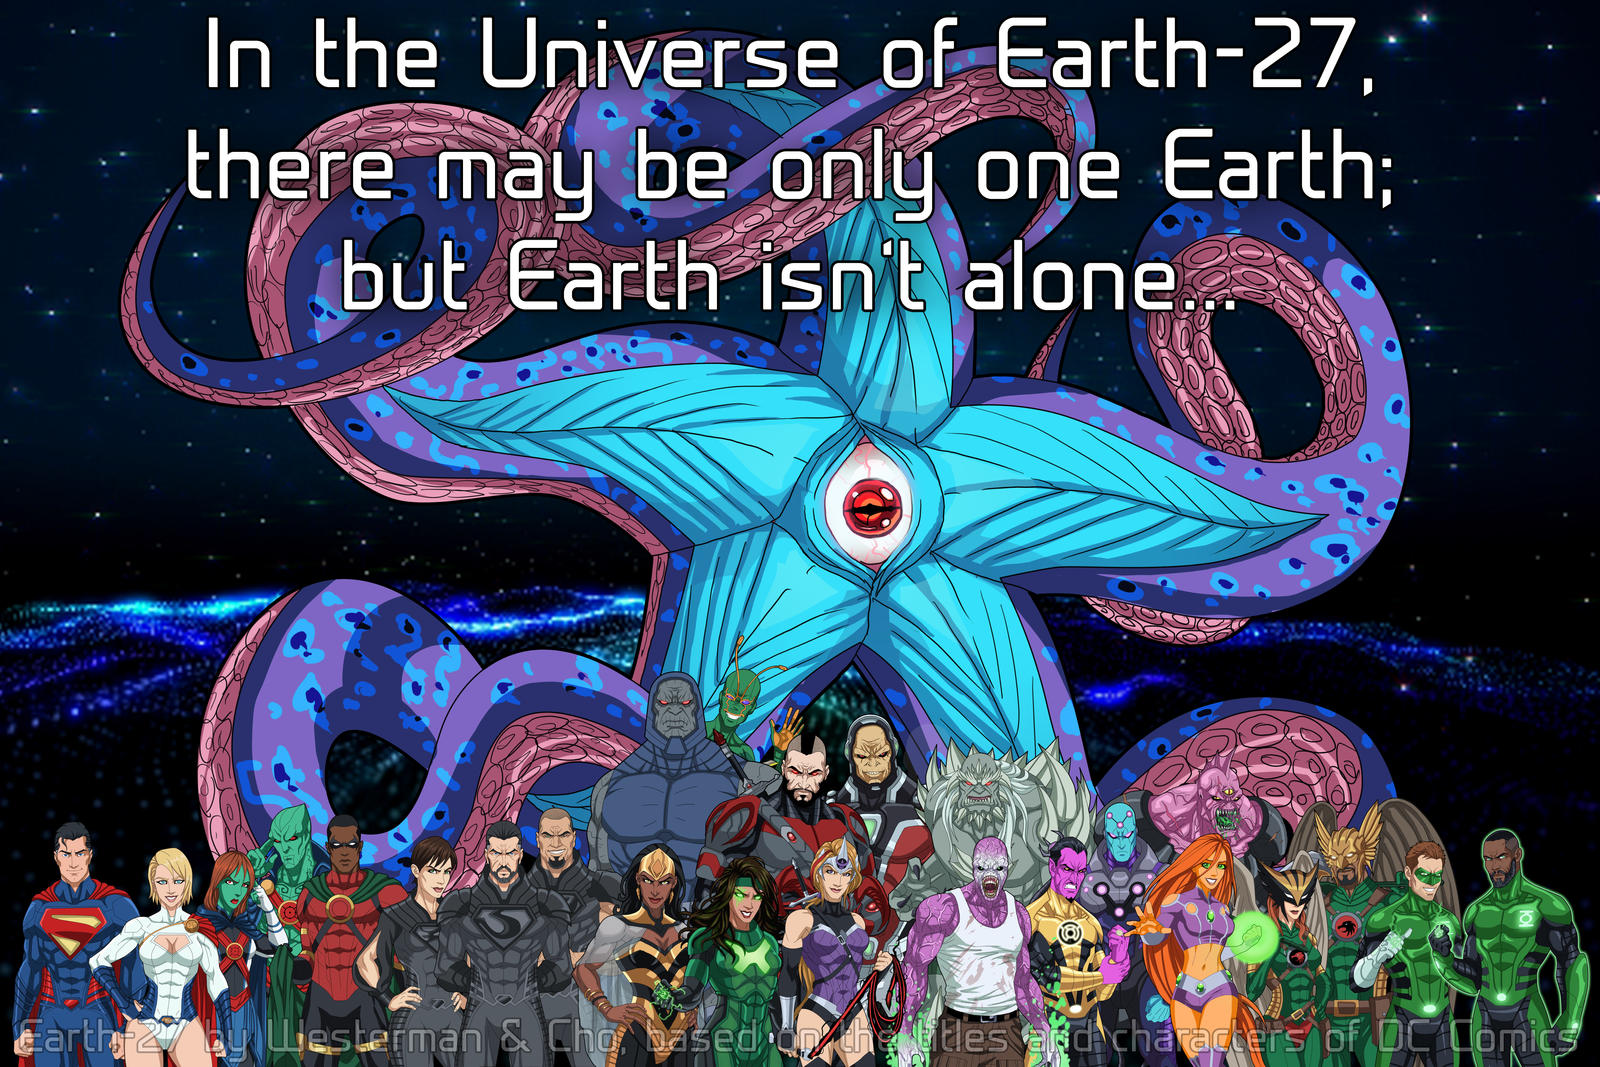 Earth-27 is more than just Earth alone by Roysovitch